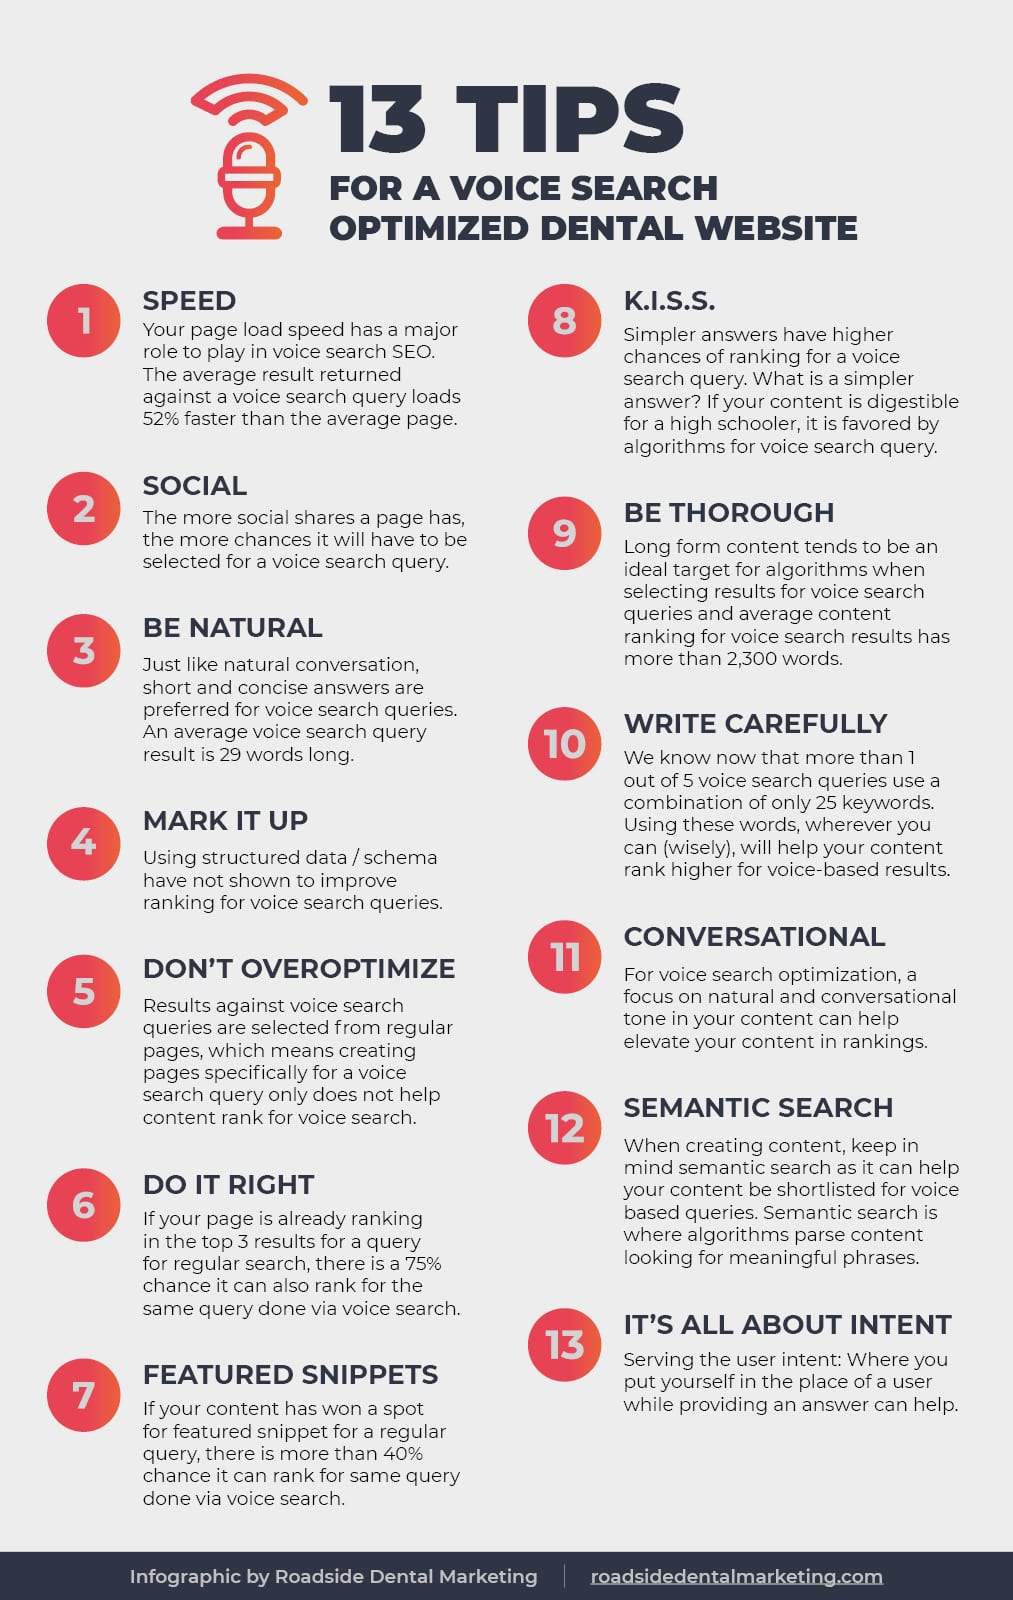 Voice search infographic: 13 tips for a voice search optimized dental website